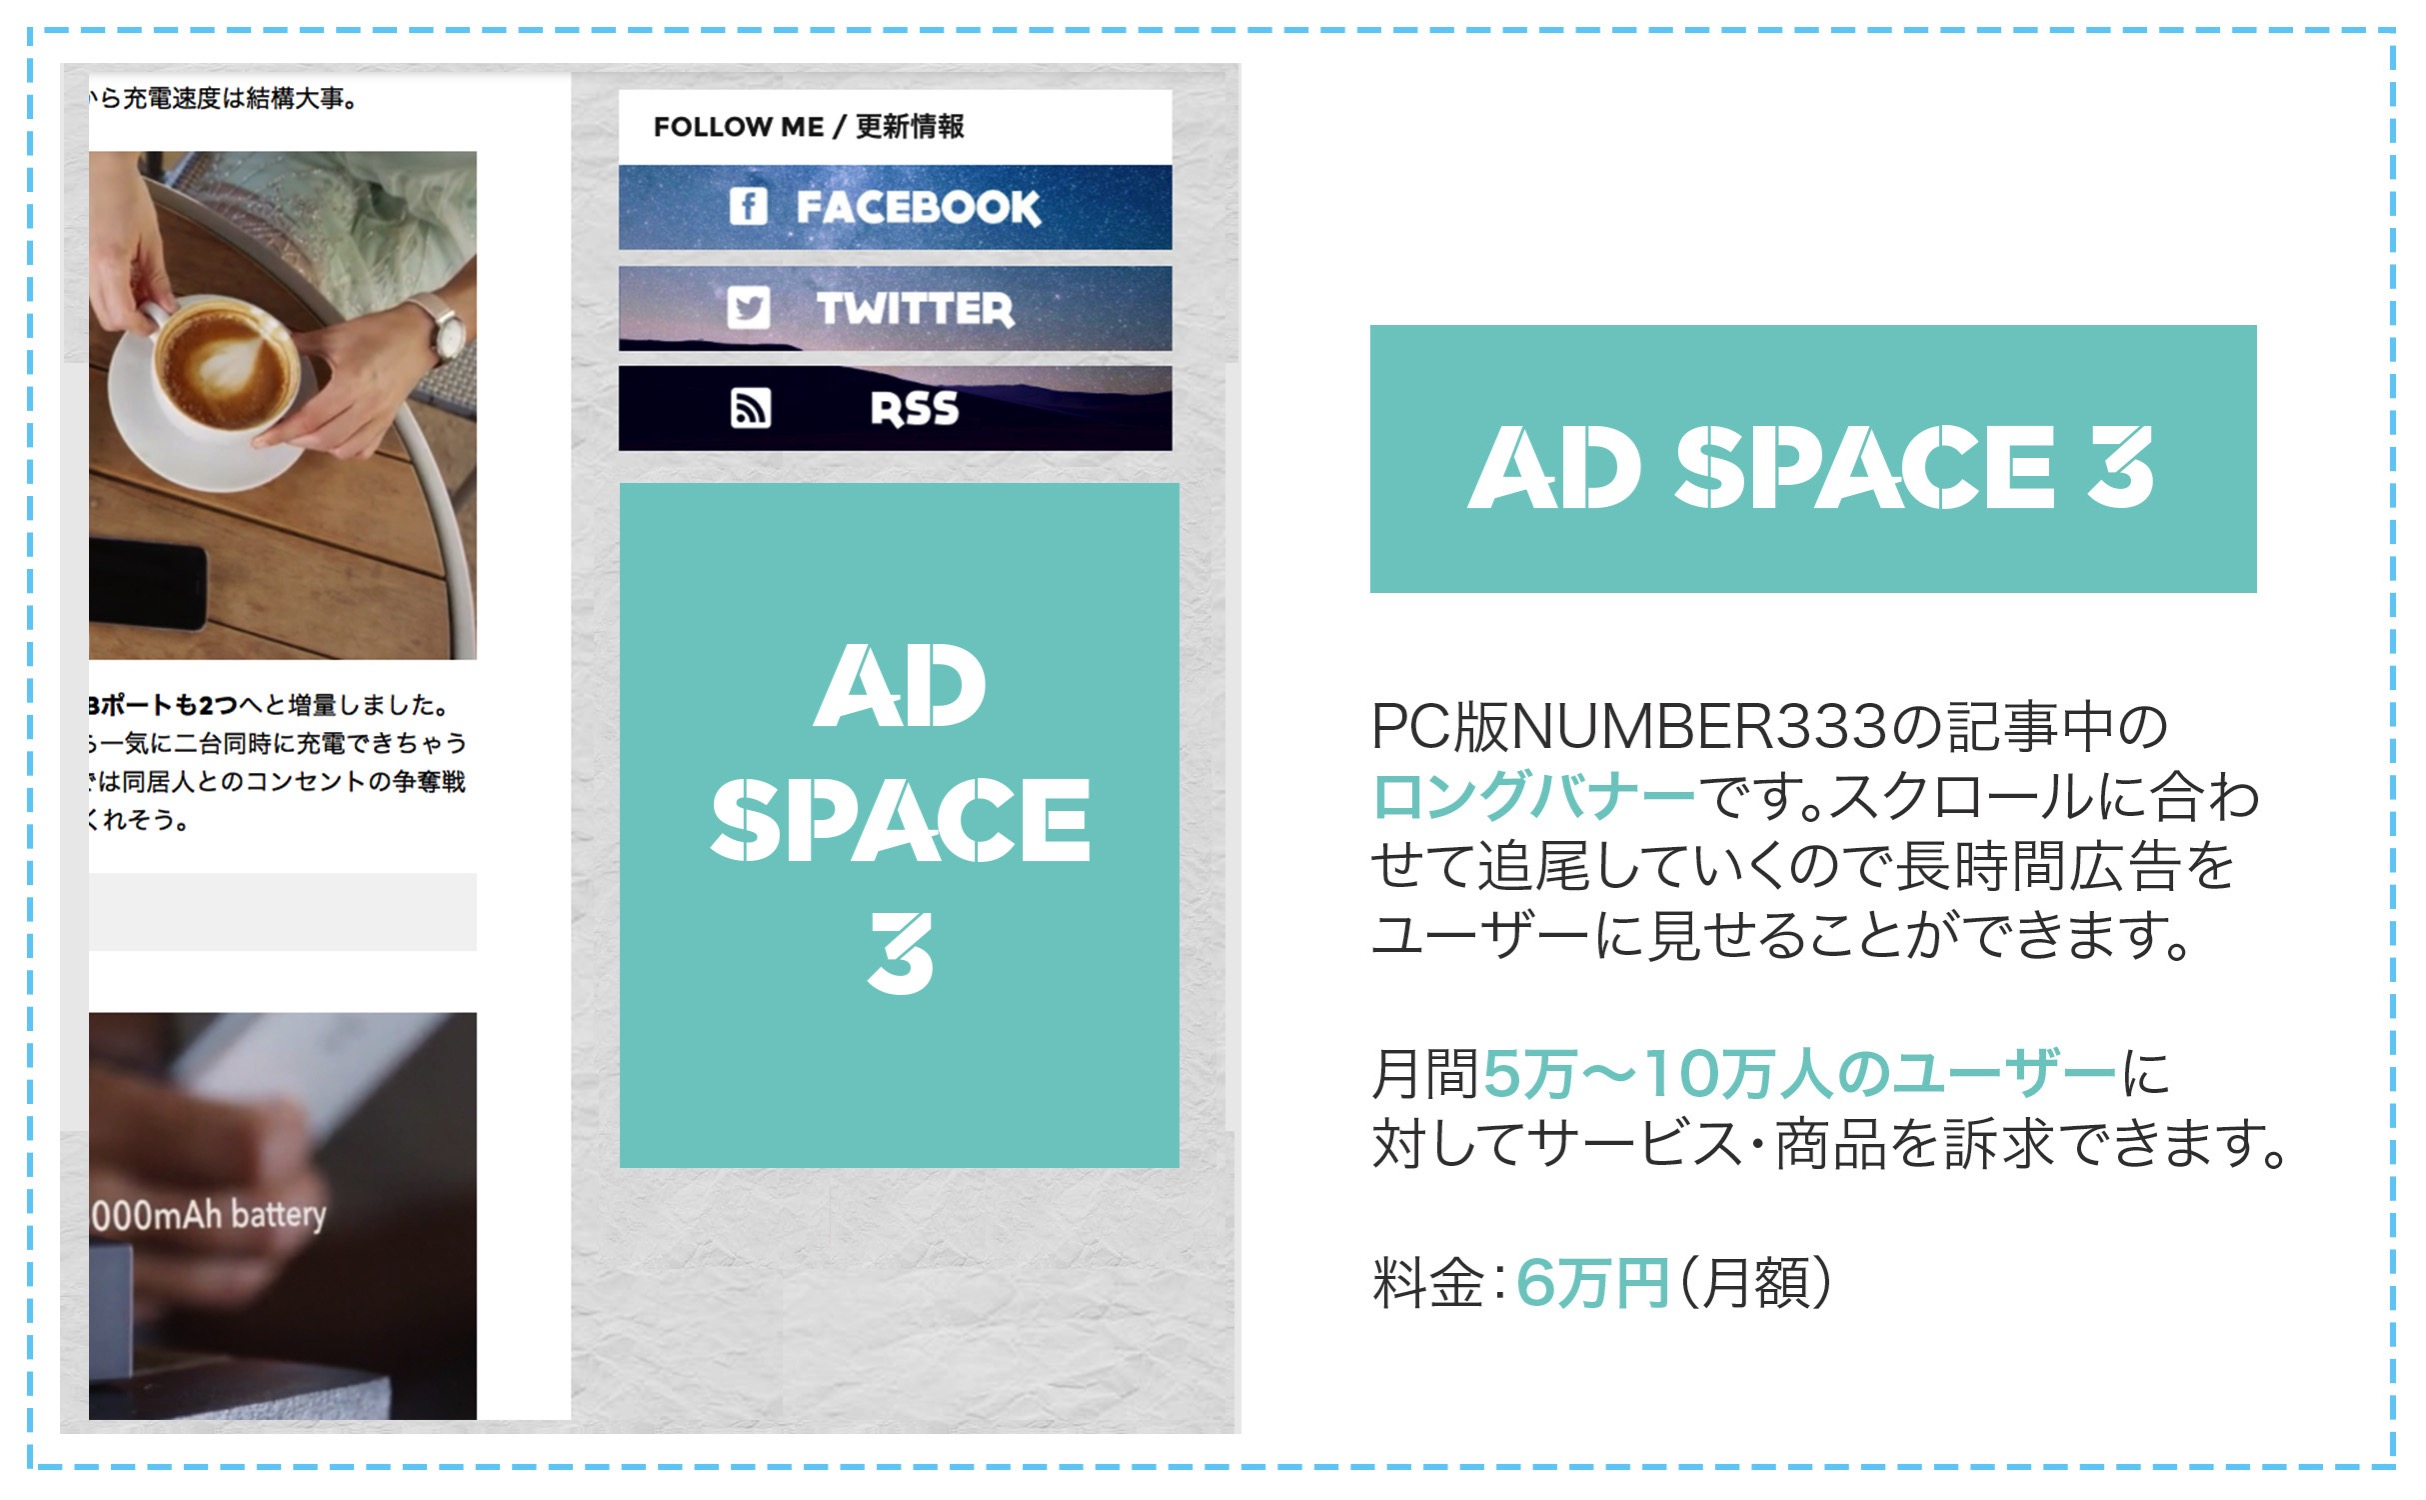 Adspace3